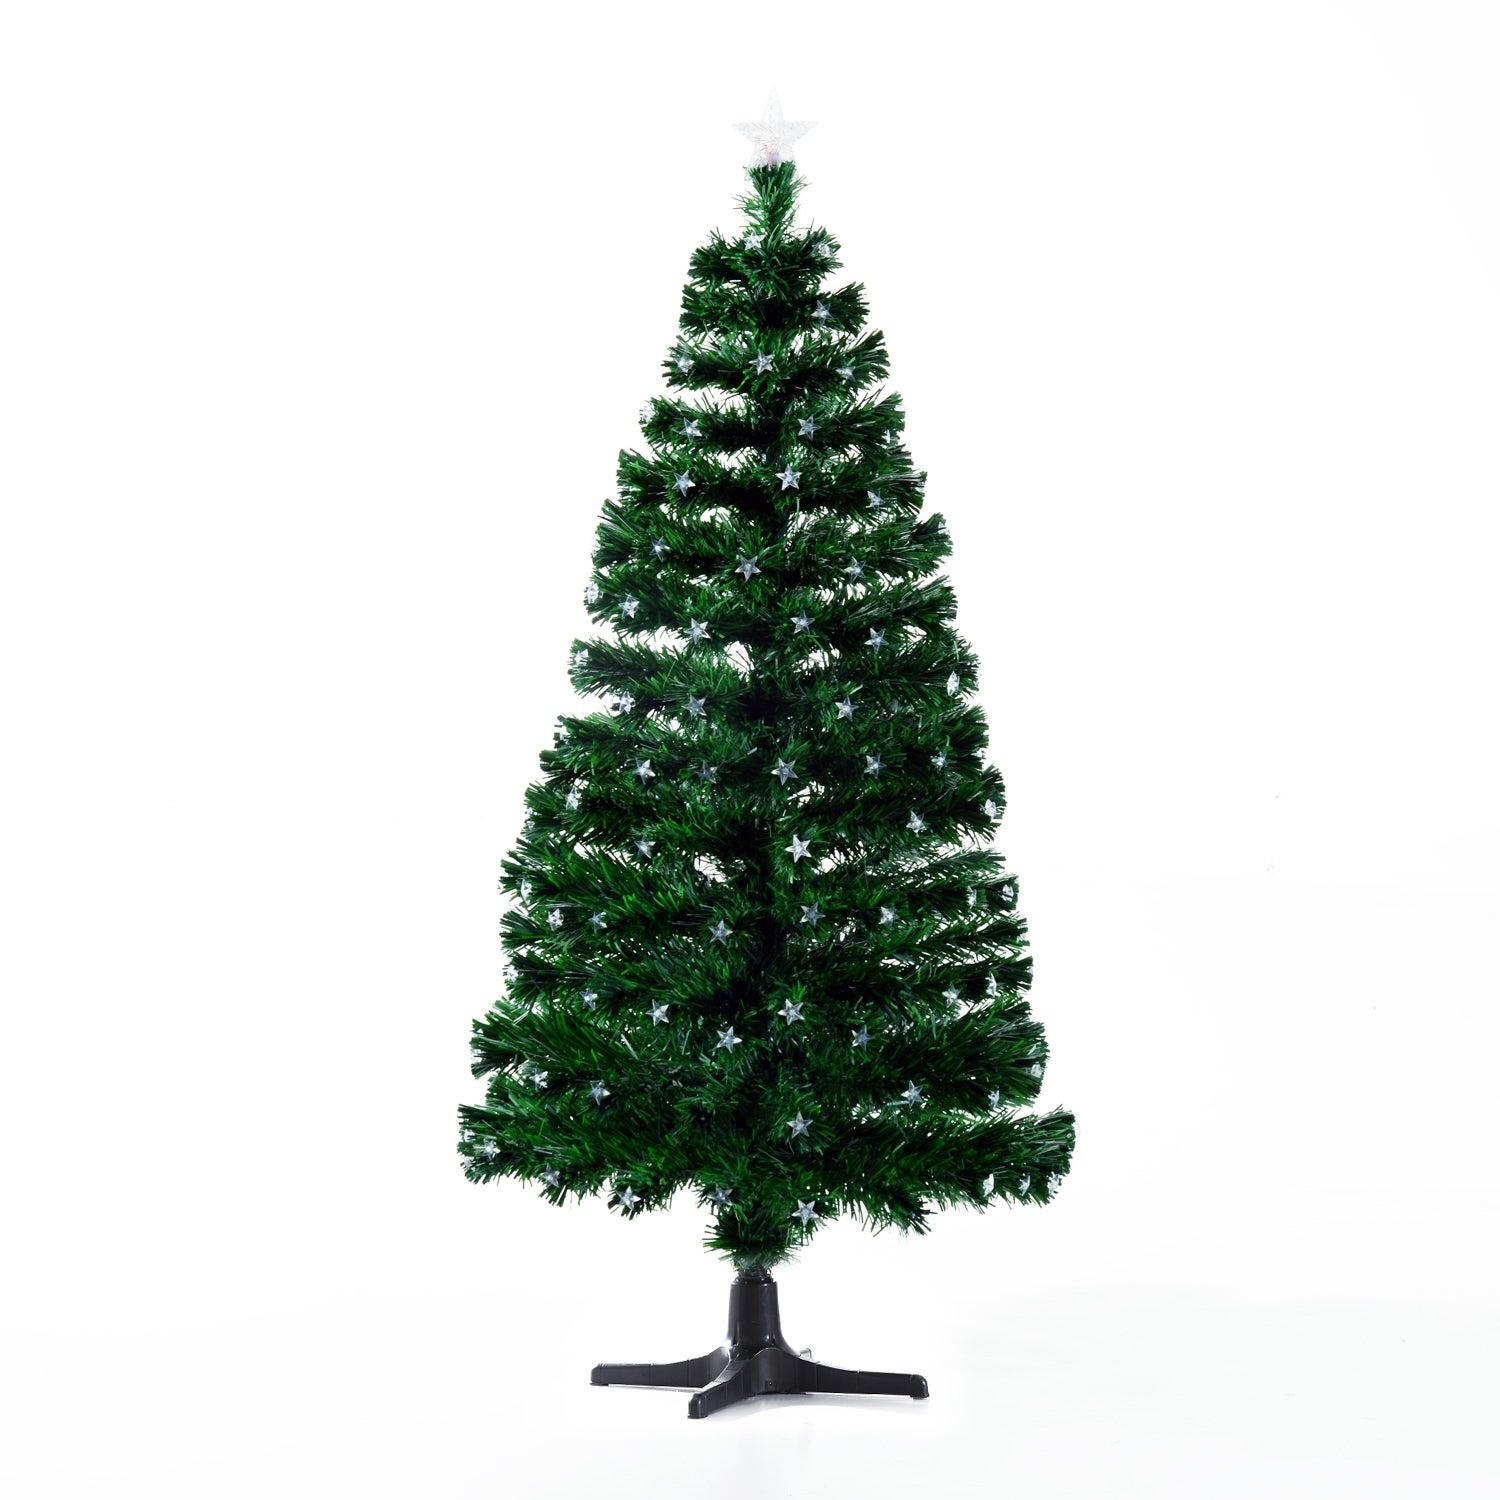 HomCom 7.5 Artificial Rotating Pre-Lit Multicolor Star LED Christmas Tree with Stand (7.5 Foot - Green - Metal/PVC)